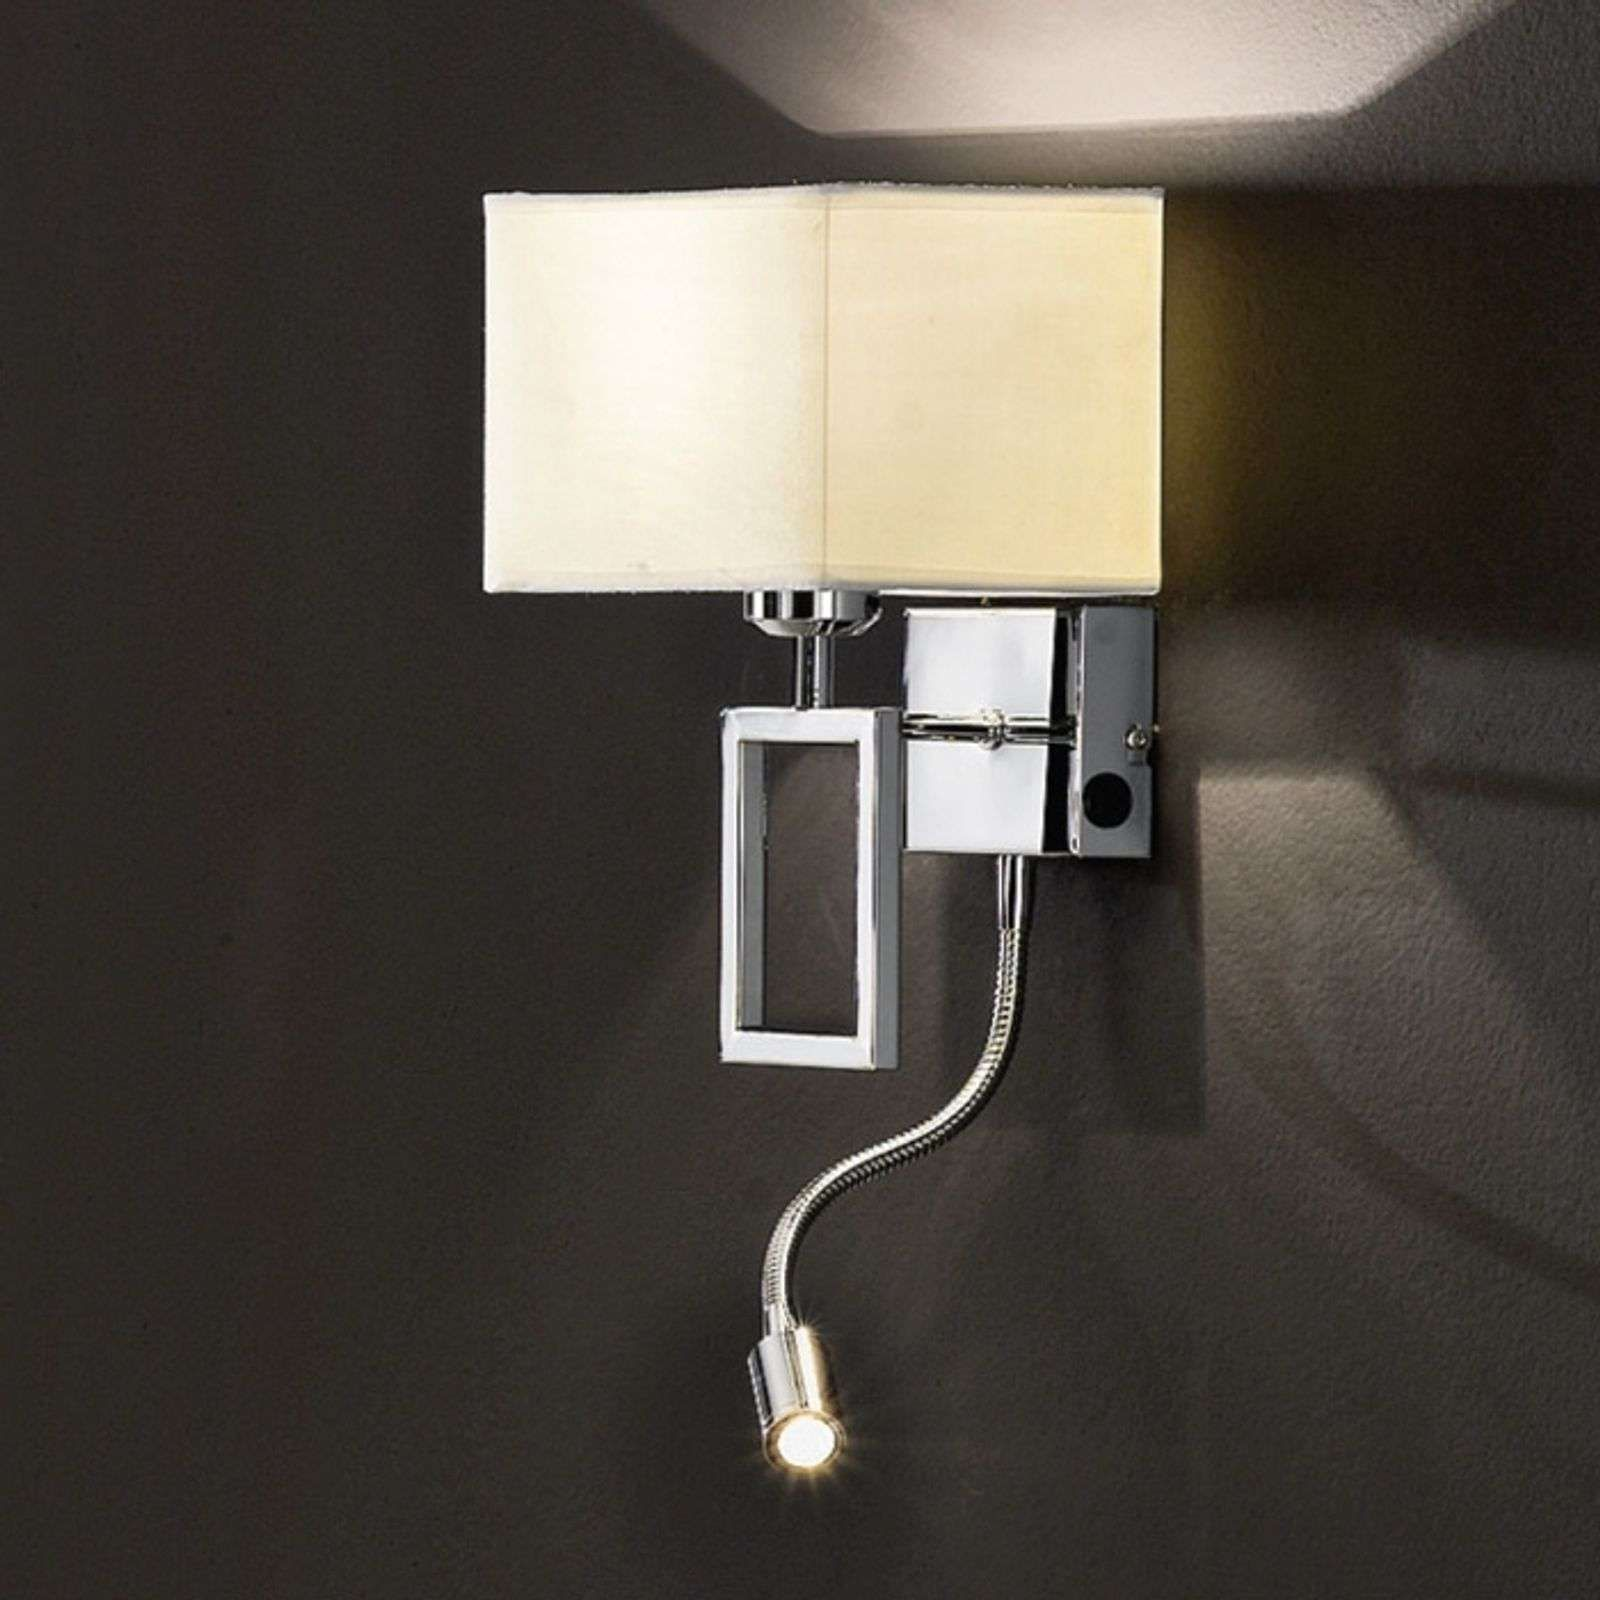 Wandleuchten Fürs Bad Wandleuchte Up Down | Lampen Wandlampen | Design ...